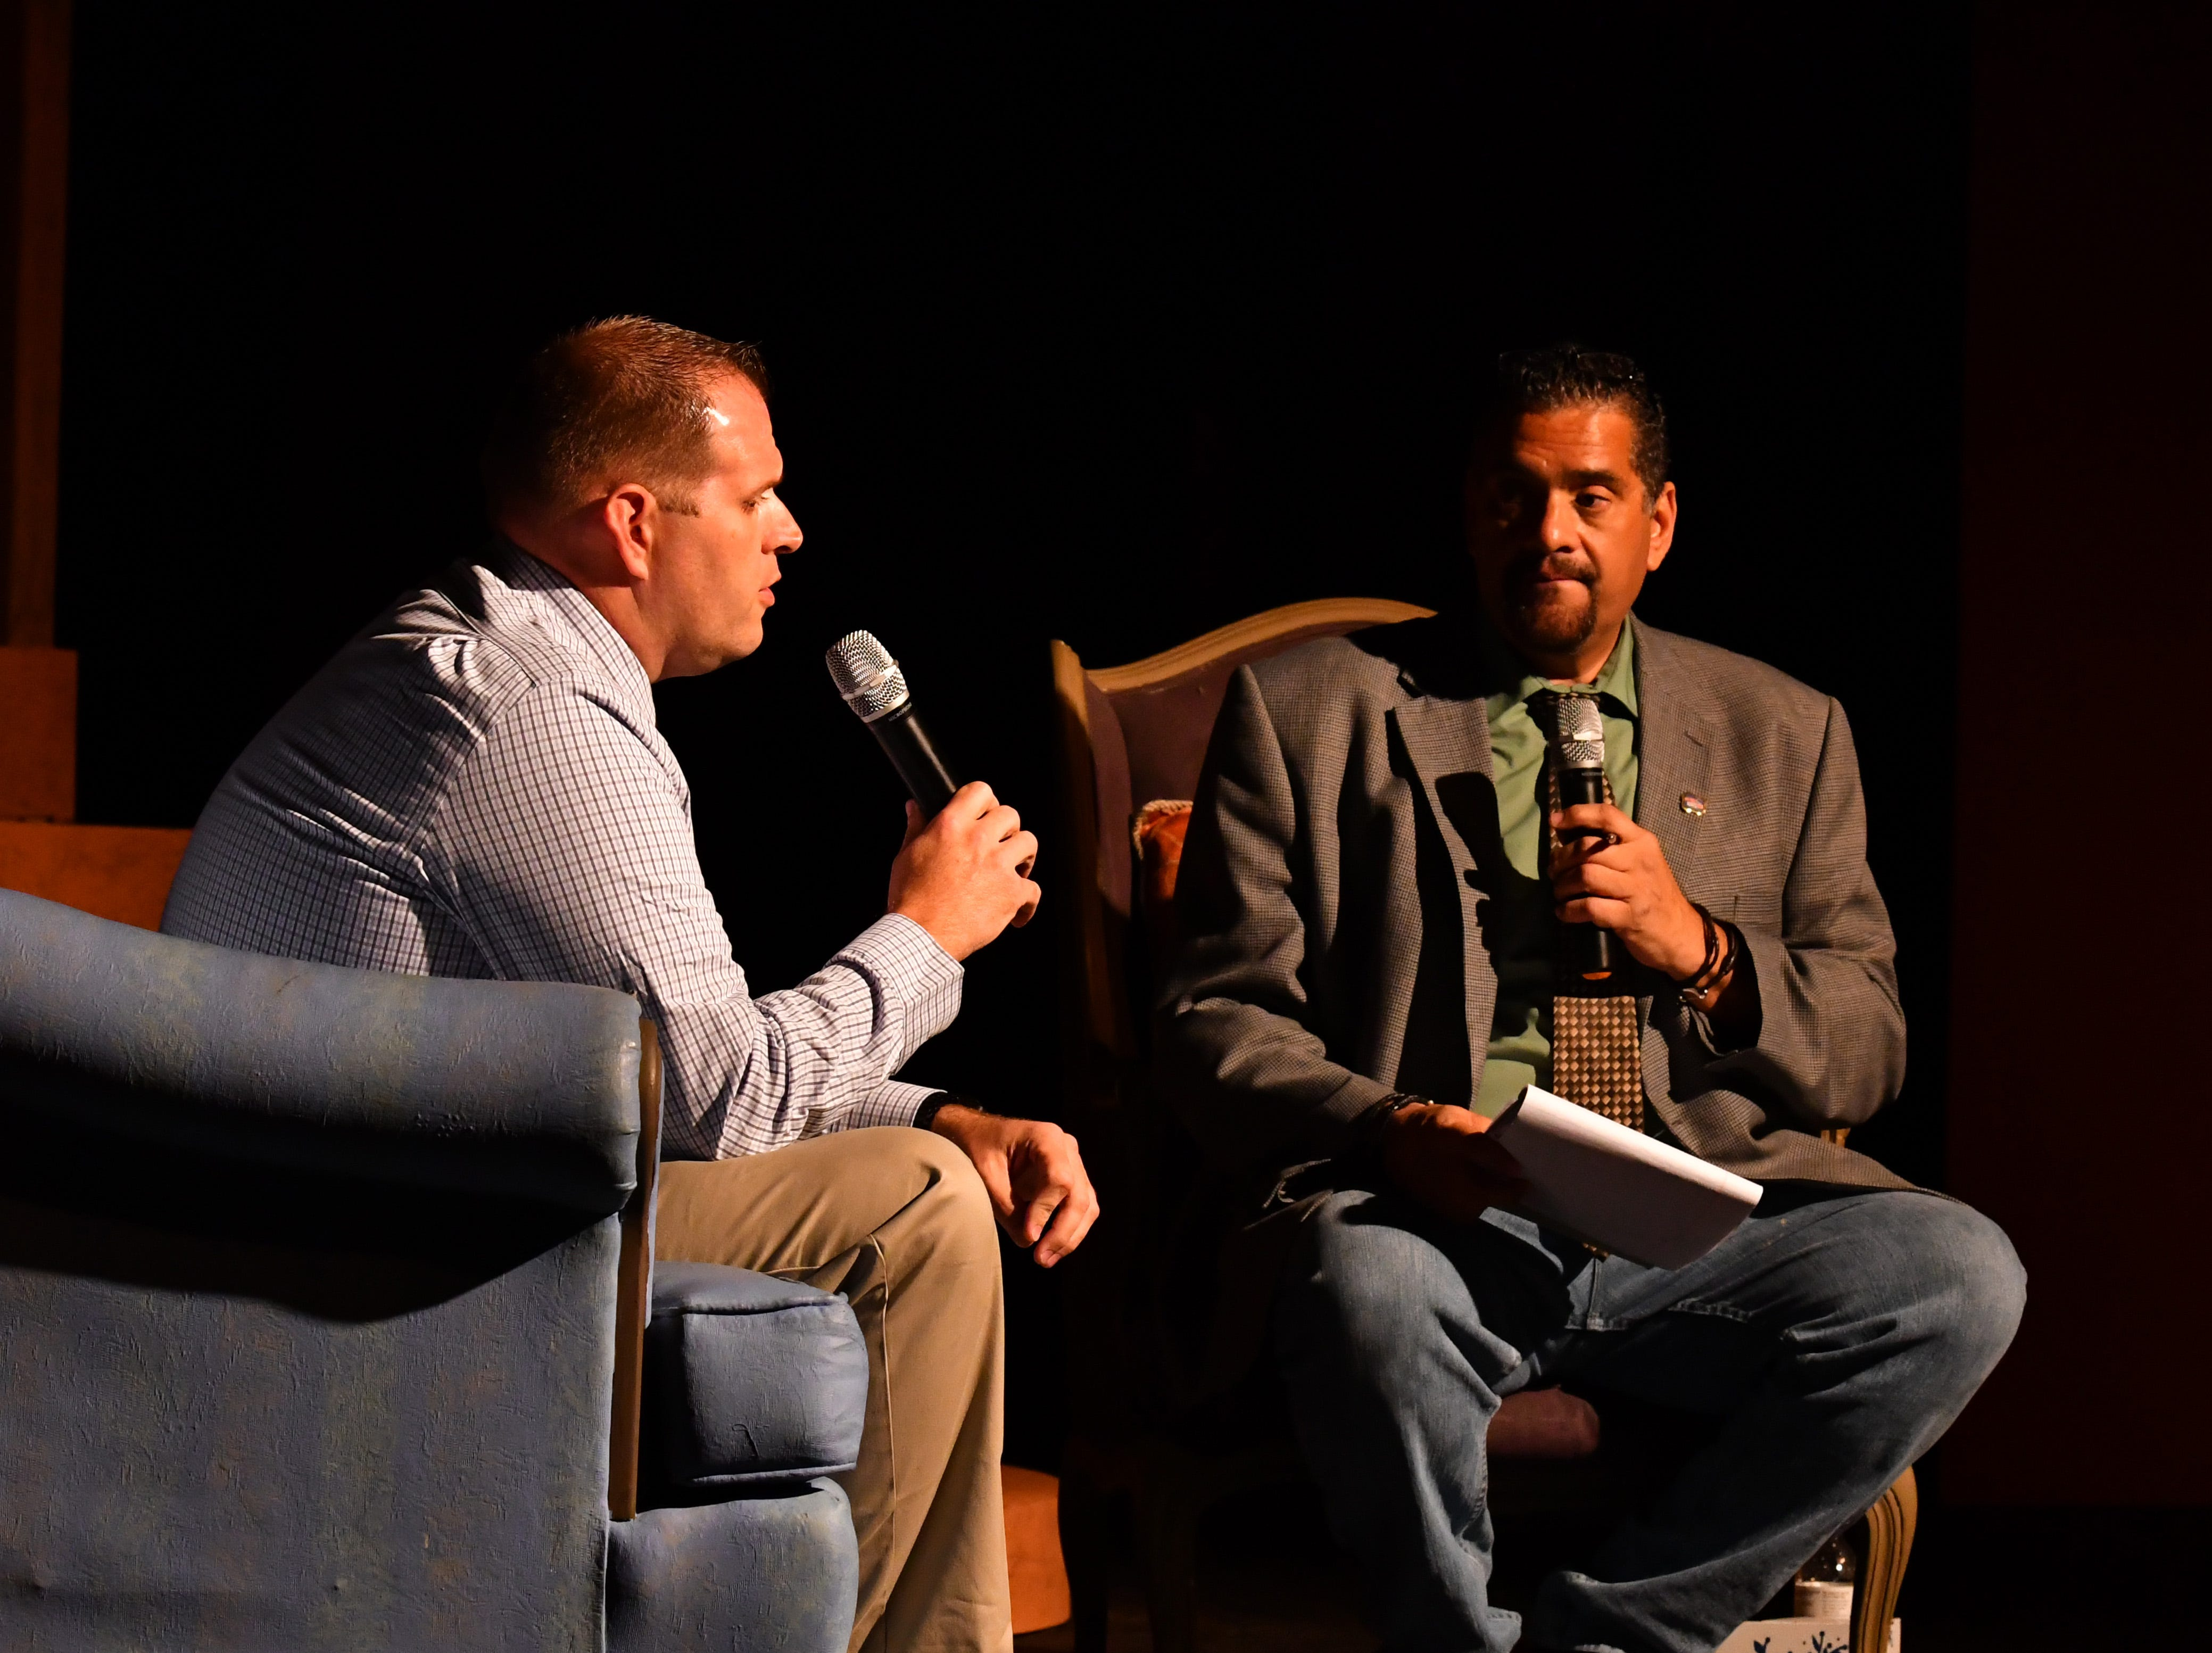 FLORIDA TODAY columnist John A. Torres hosted Murder on the Space Coast Live at the Surfside Playhouse in Cocoa Beach Wednesday evening with guests Stanley Brizz, head of the Brevard County Opioid Abuse task force, Nic Sandberg, private investigator working the Brandy Hall case,Jamie LeBlanc, Jeff Abramowski's daughter and Laura Siemers – Jeff Abramowski's attorney.